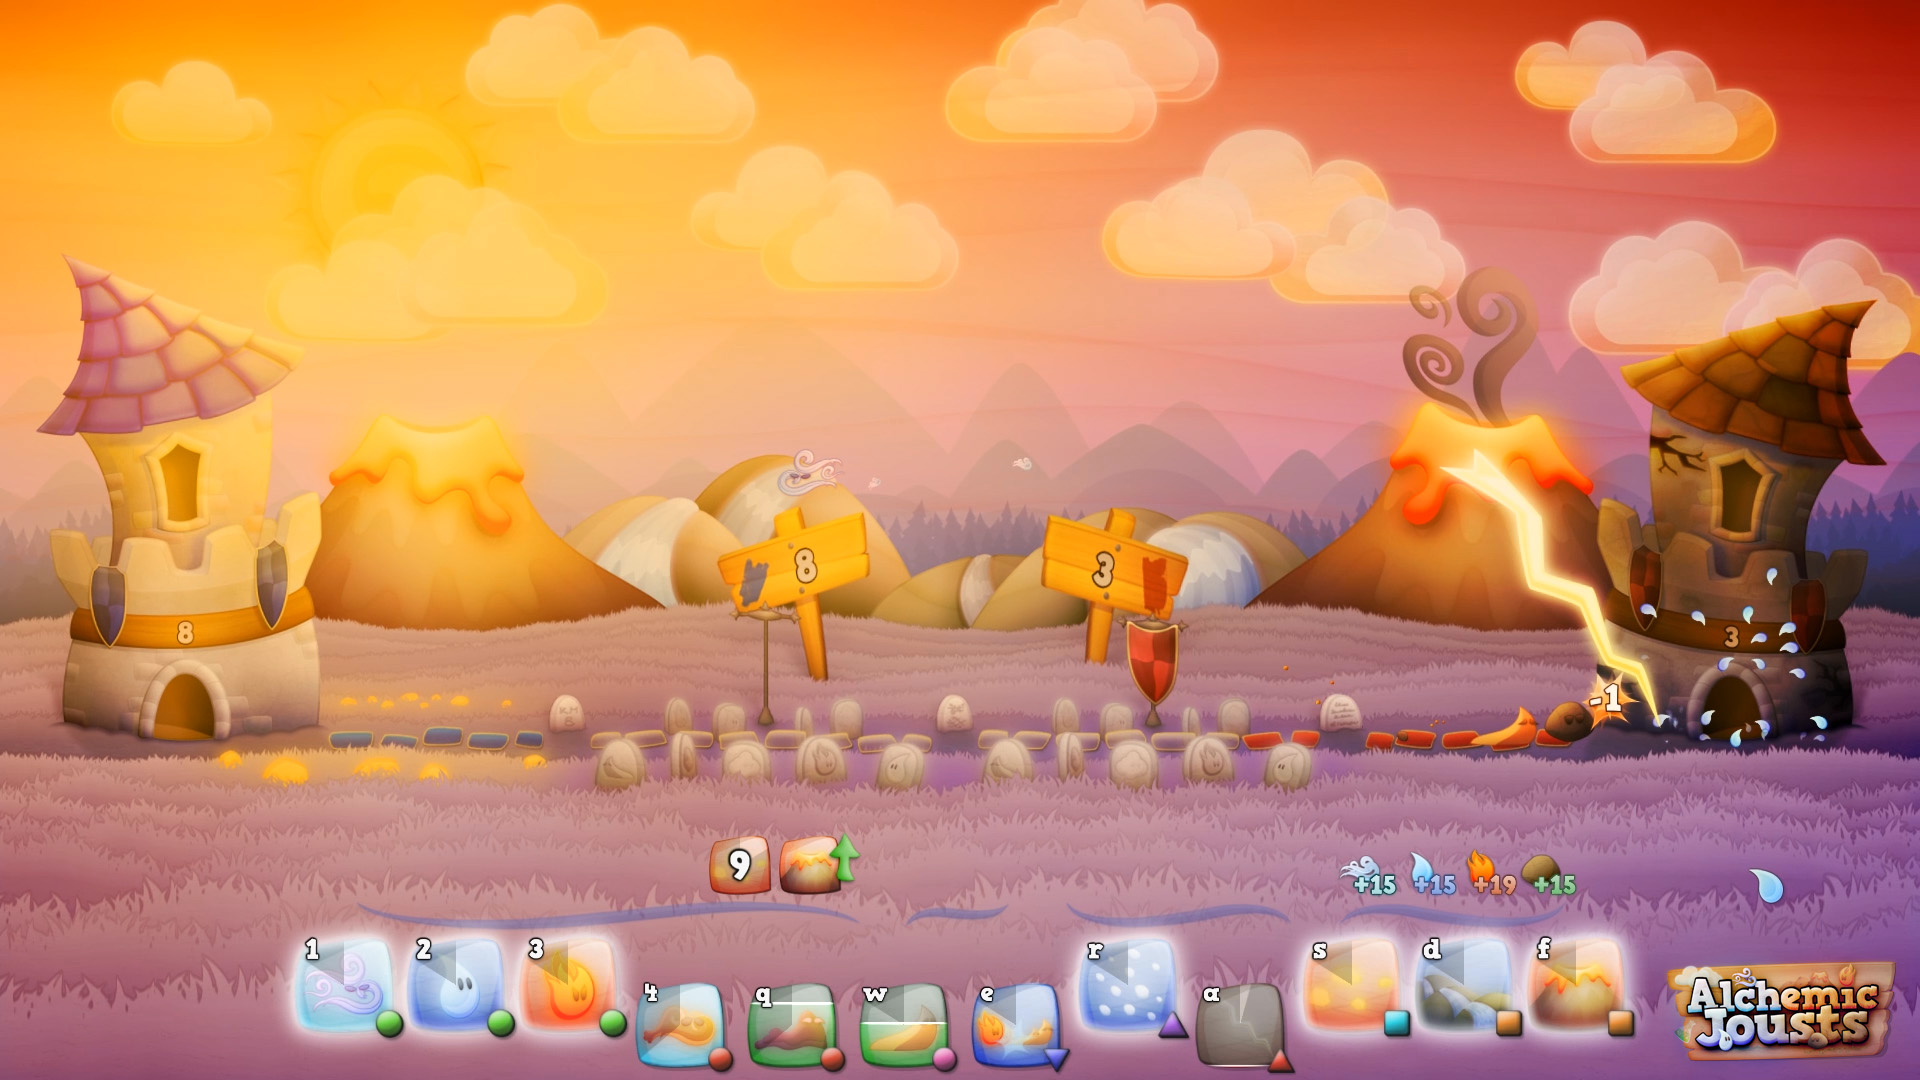 Alchemic Jousts v1.01